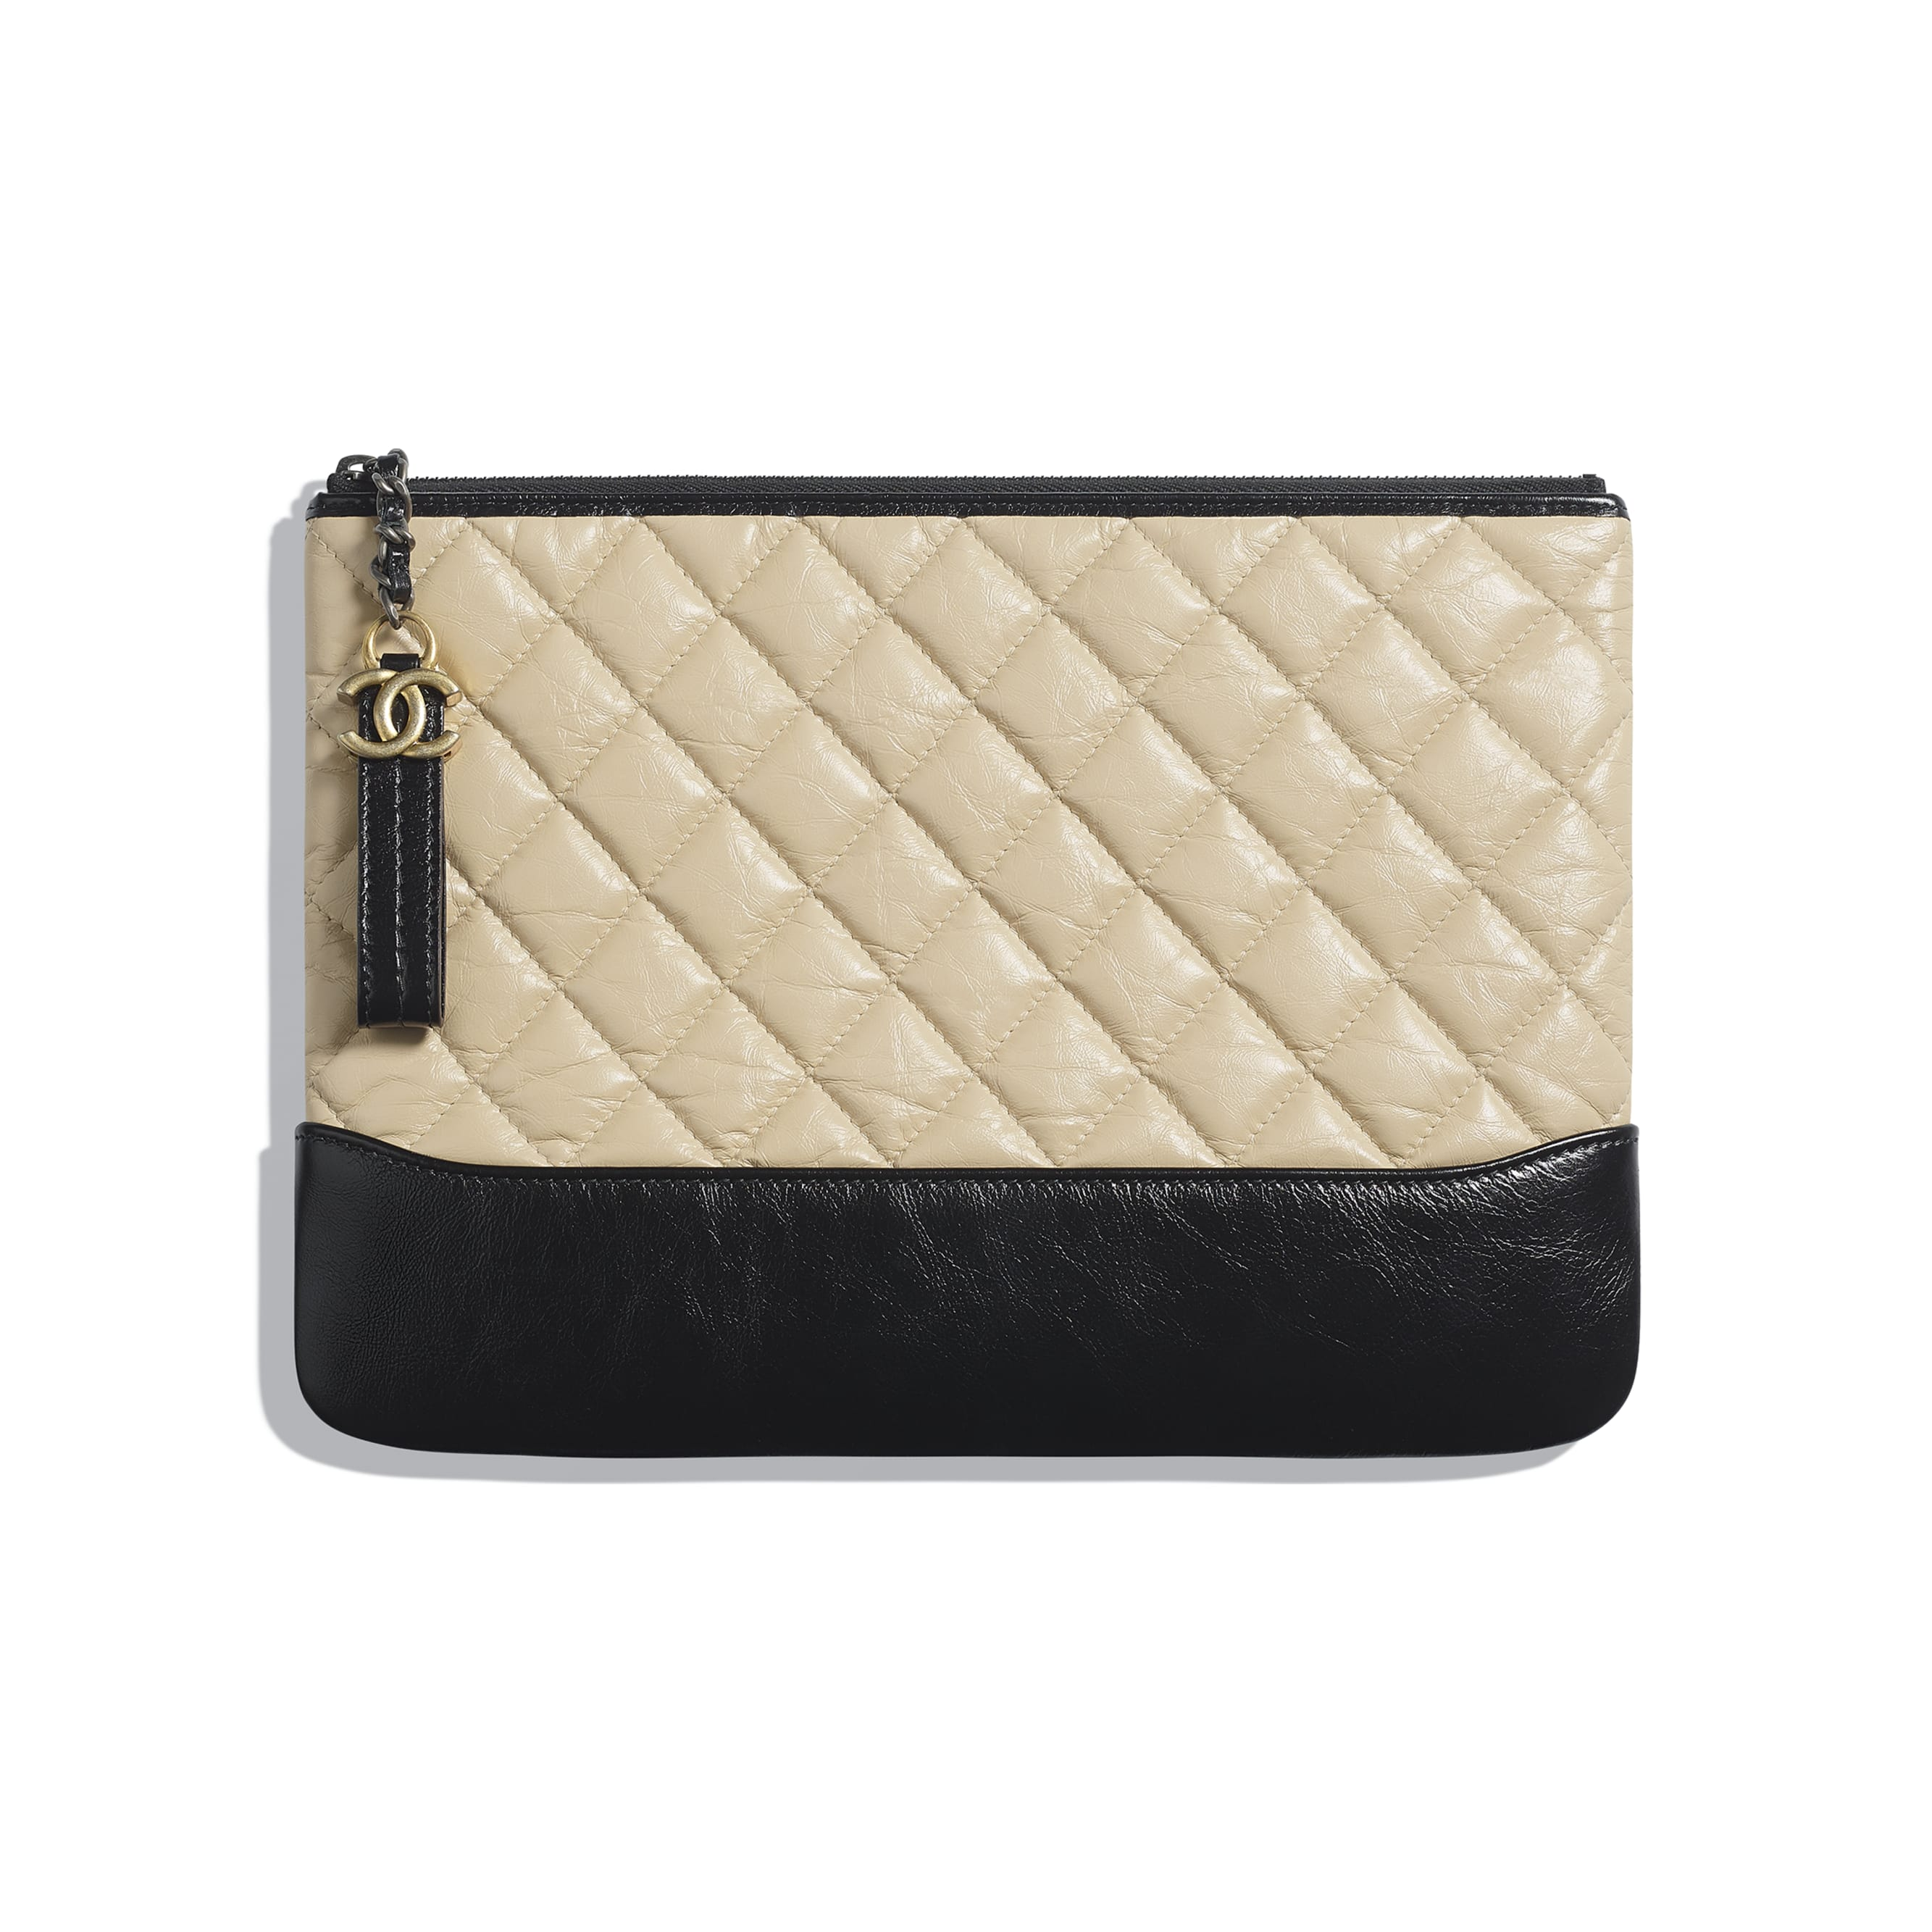 Pouch - Beige & Black - Aged Calfskin, Smooth Calfskin & Gold-Tone Metal - CHANEL - Default view - see standard sized version